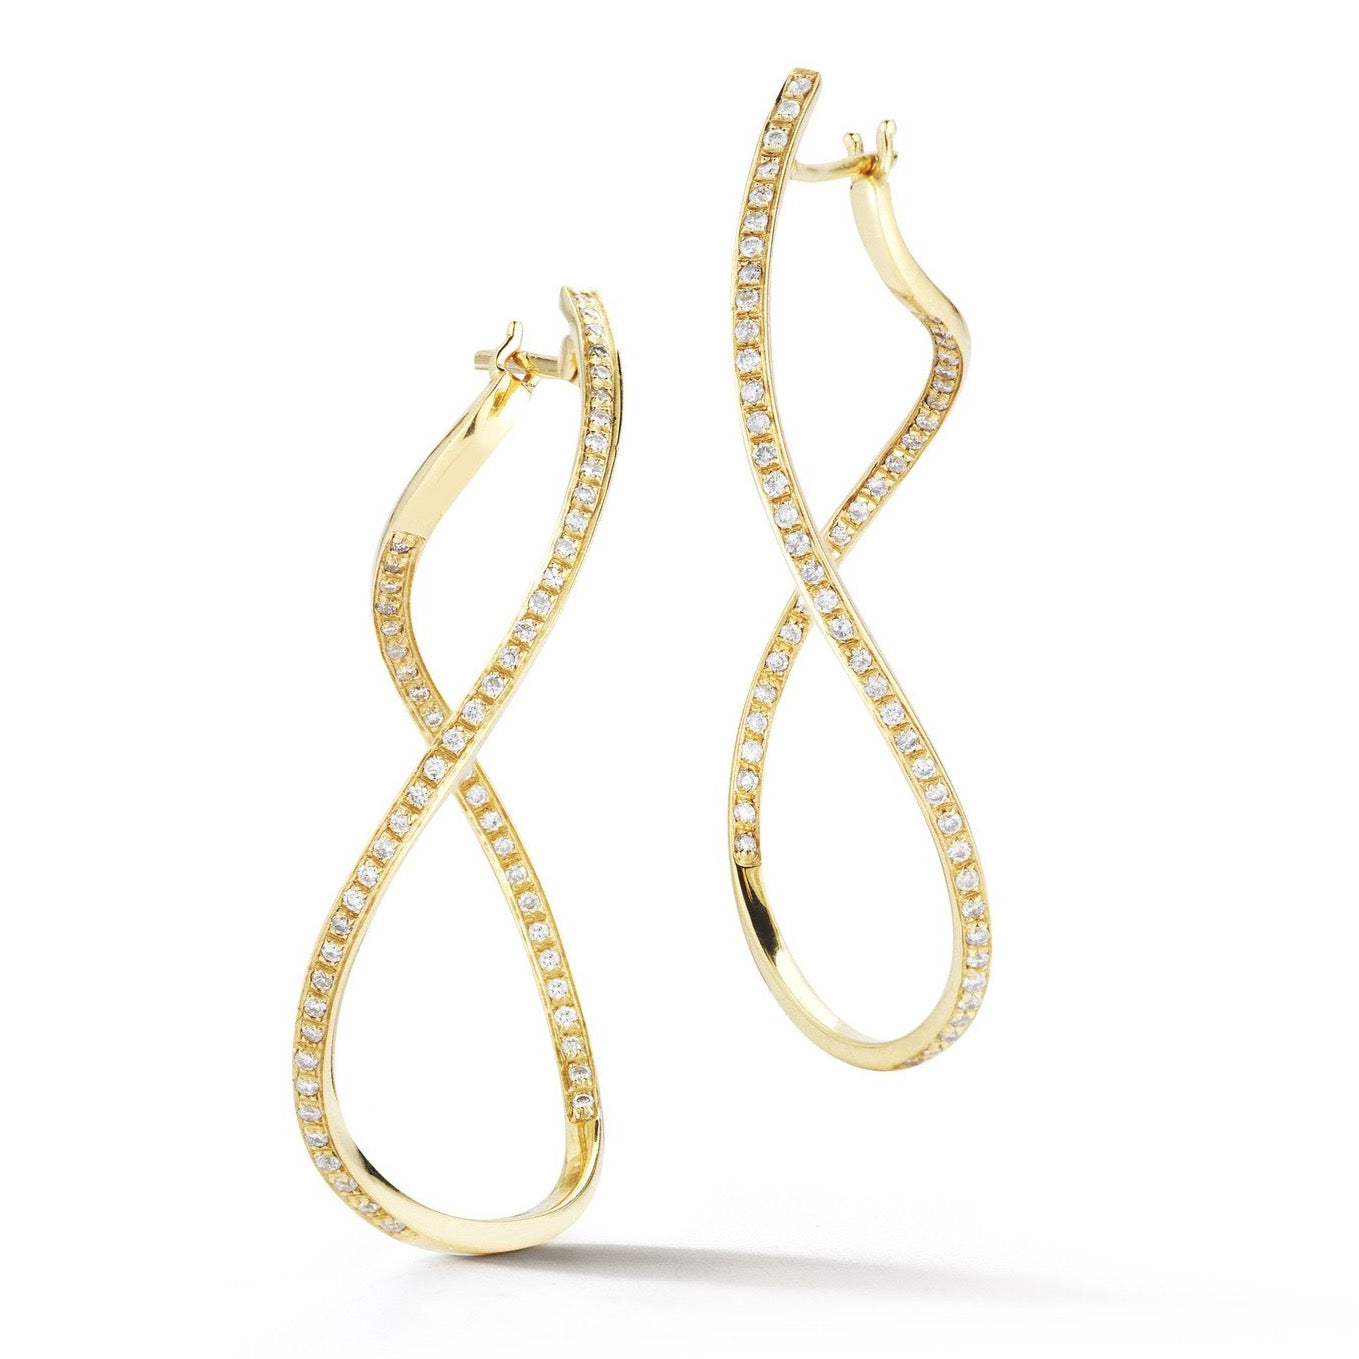 A-FURST-AQUA-HOOP-EARRINGS-DIAMONDS-YELLOW-GOLD-O0105G1